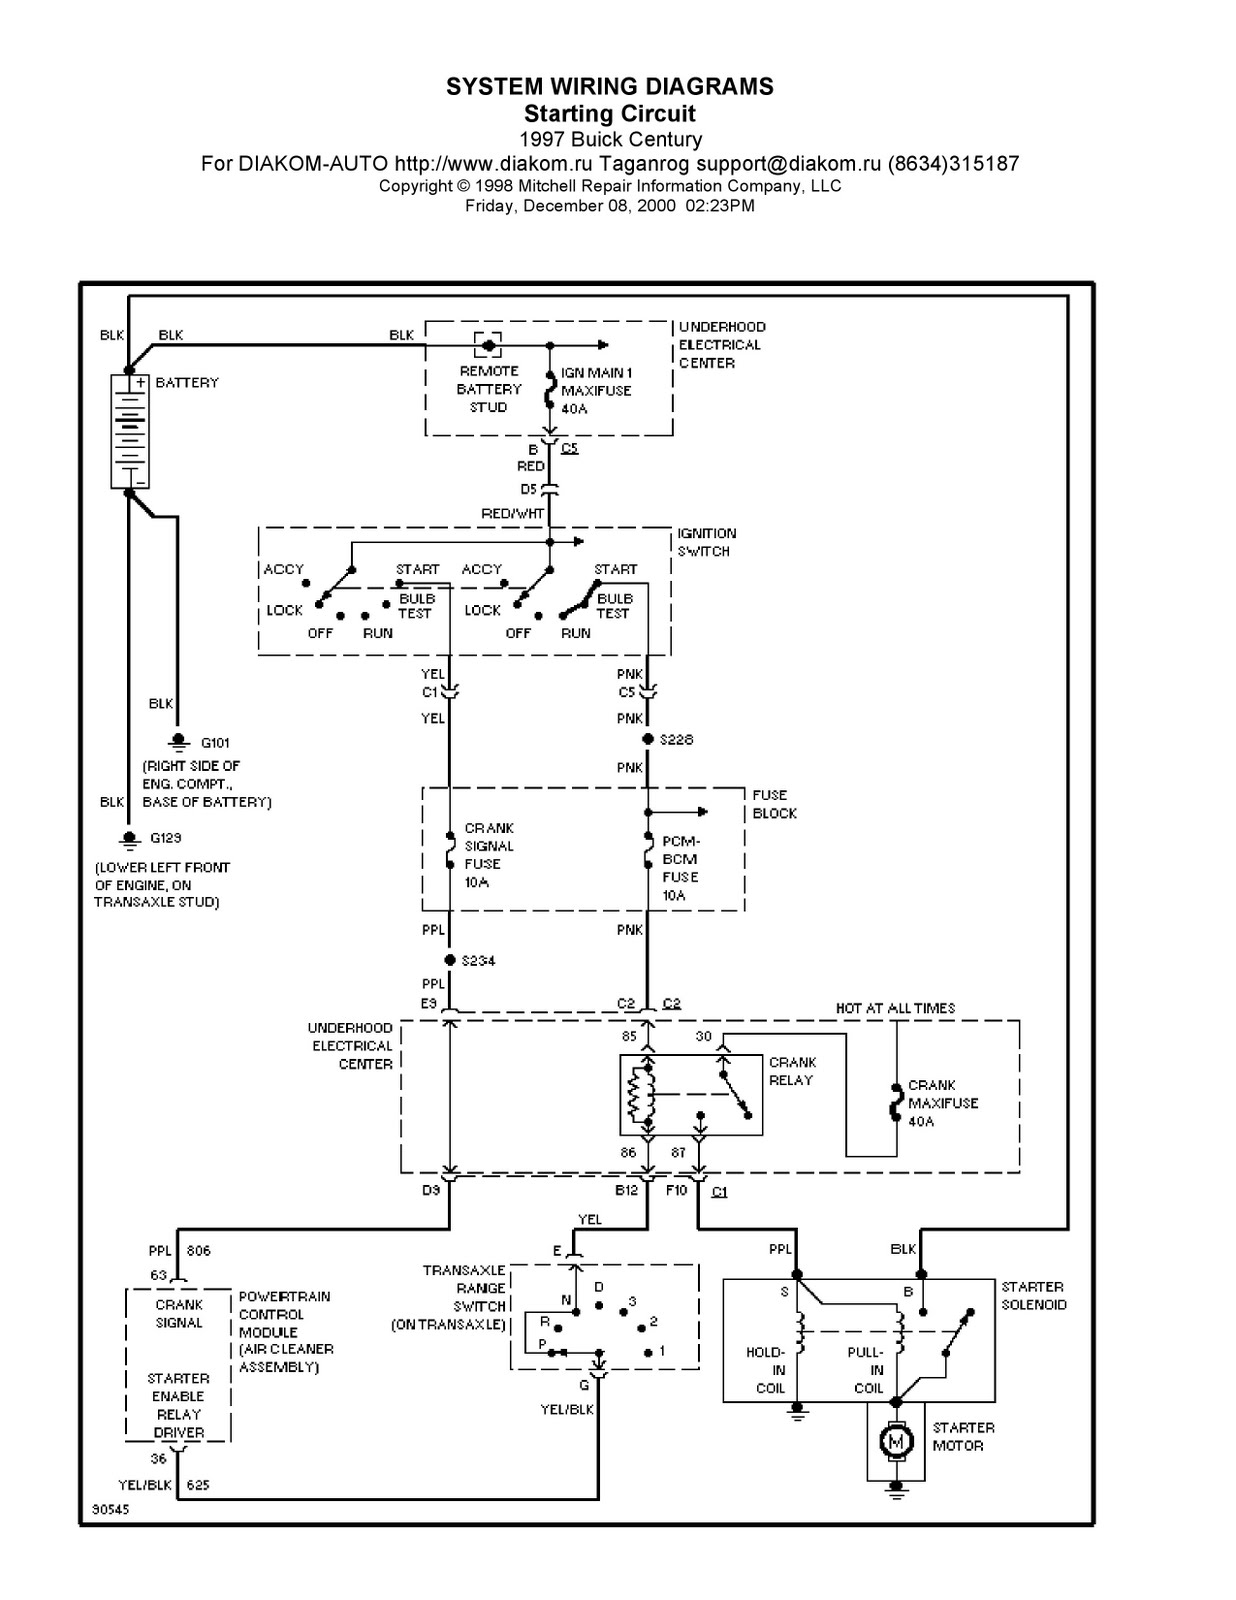 buick century system wiring diagram starting circuit 1997 buick century system wiring diagram starting circuit